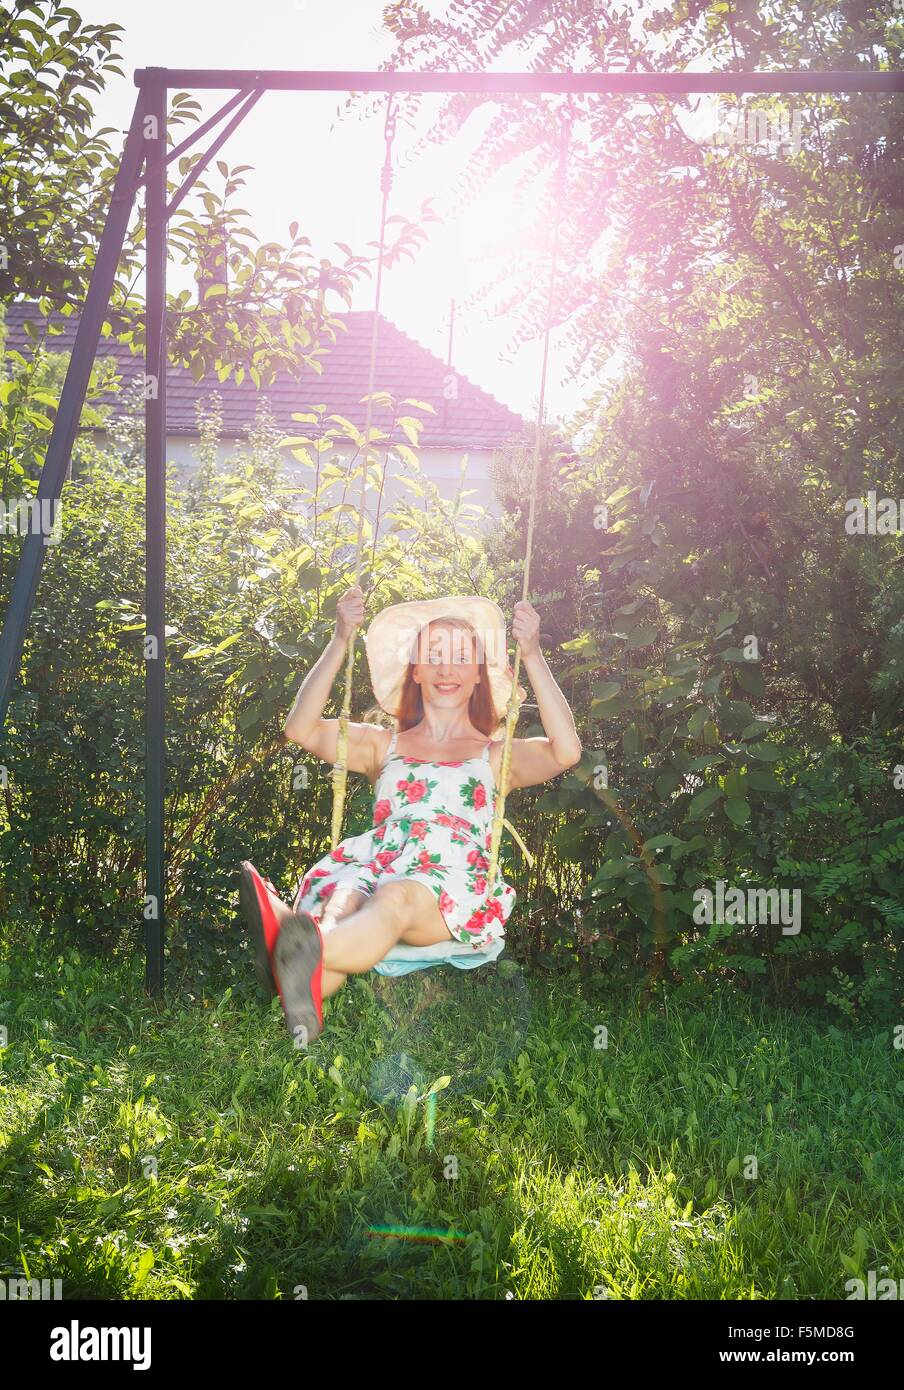 Mid adult woman swinging sur balançoire Photo Stock